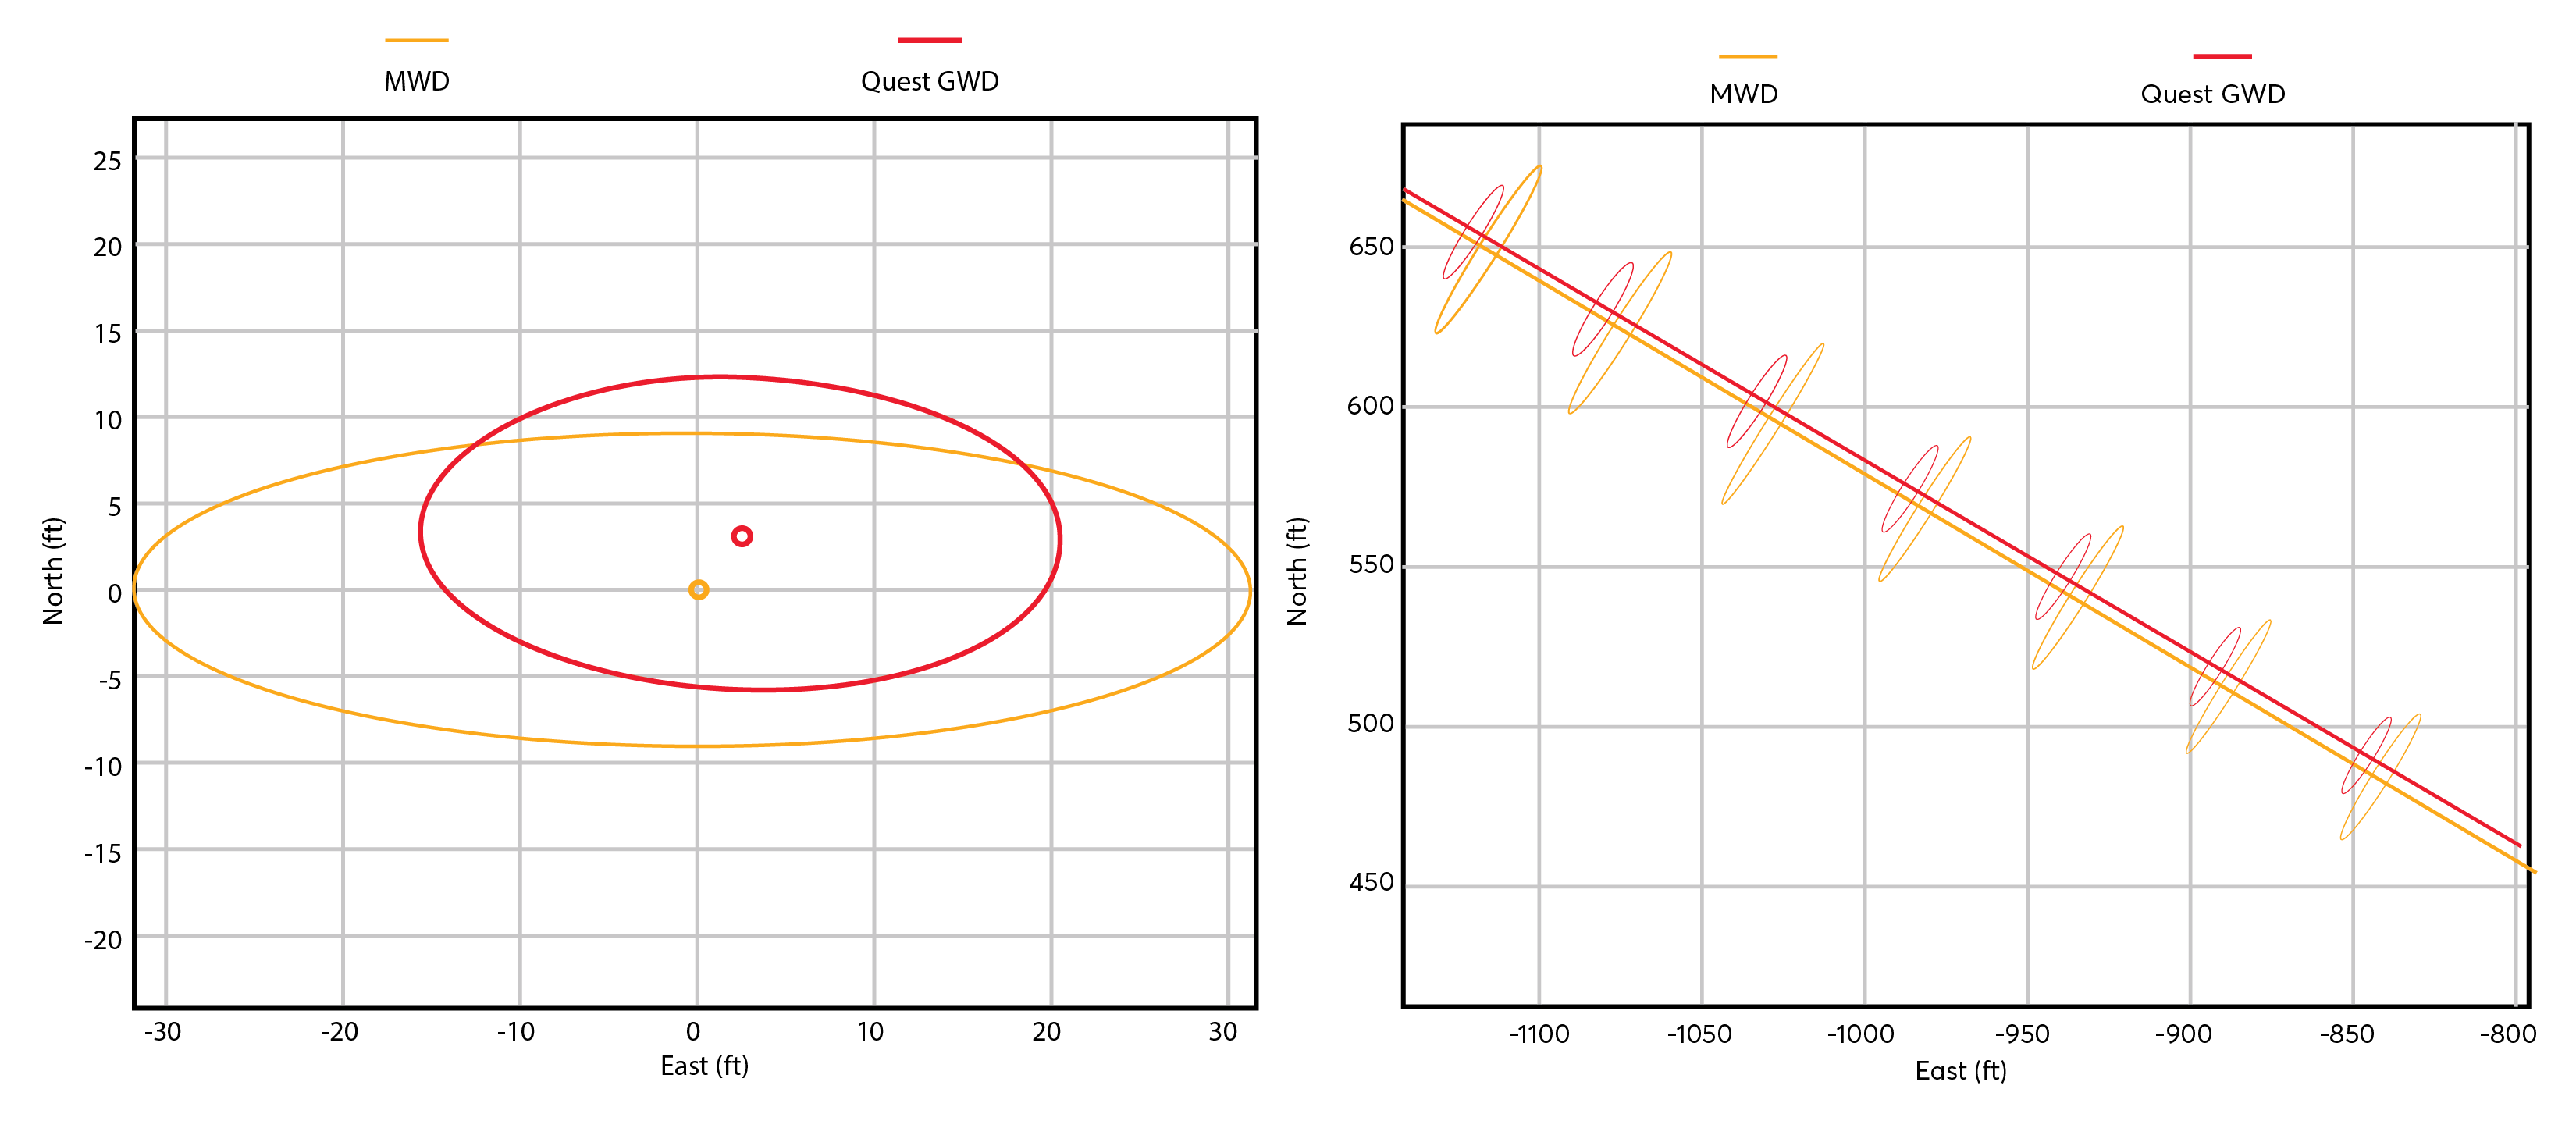 At the same depth, the Quest GWD system reduced the ellipse of uncertainty versus the corrected MWD surveys. The system also highlighted a small error in the MWD data's well placement.